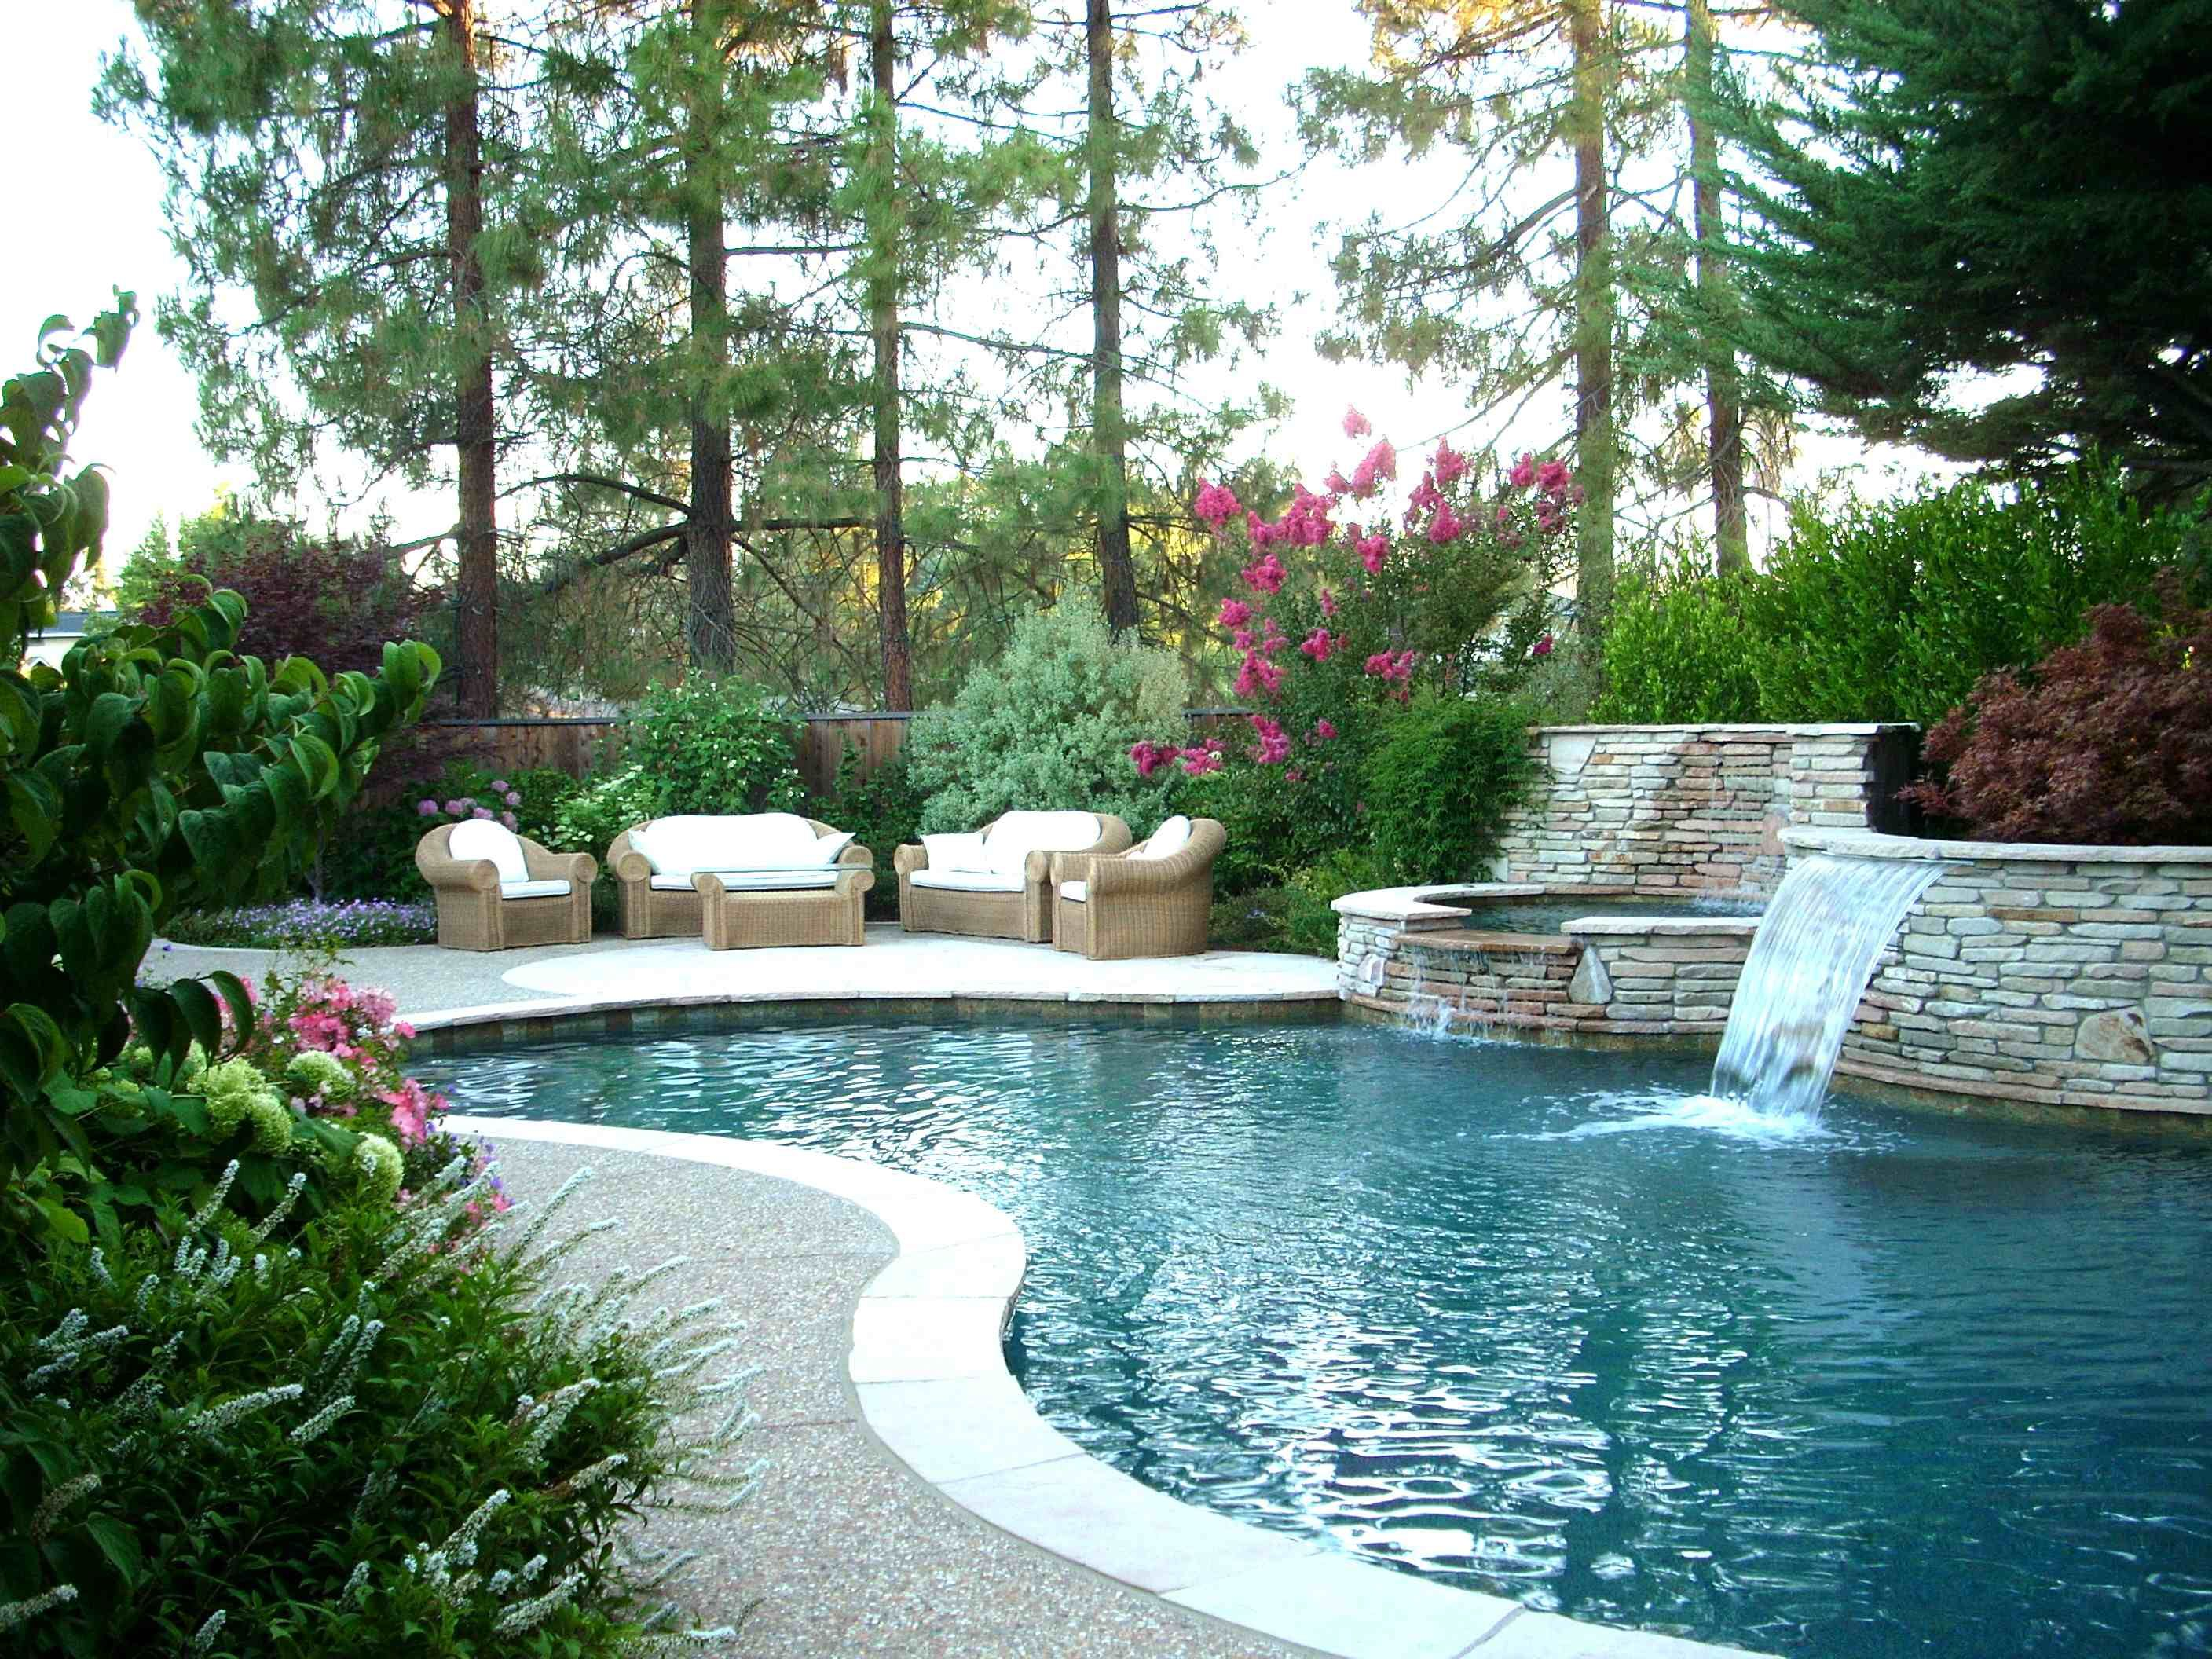 Landscaped pool pictures landscape design ideas for for Landscape garden ideas pictures